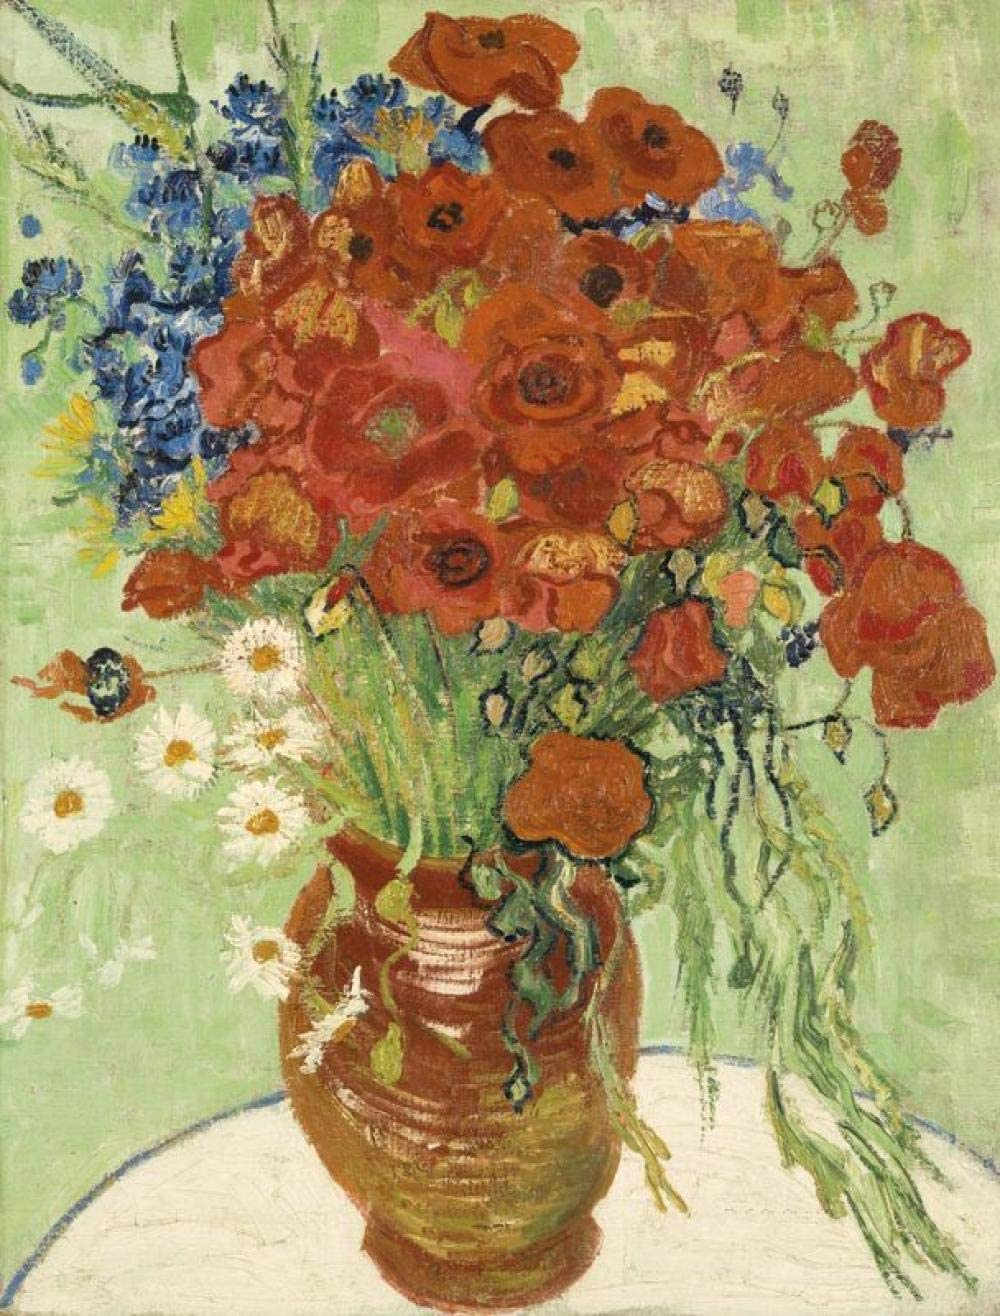 Still Life Red Poppies Daisies by Van Gogh's Oil Painting DIY Paint by Numbers Famous Artwork Abstract Canvas Paint by Kits Adults Beginner(with shed Inner Frame) 15.75 x 19.69 inches